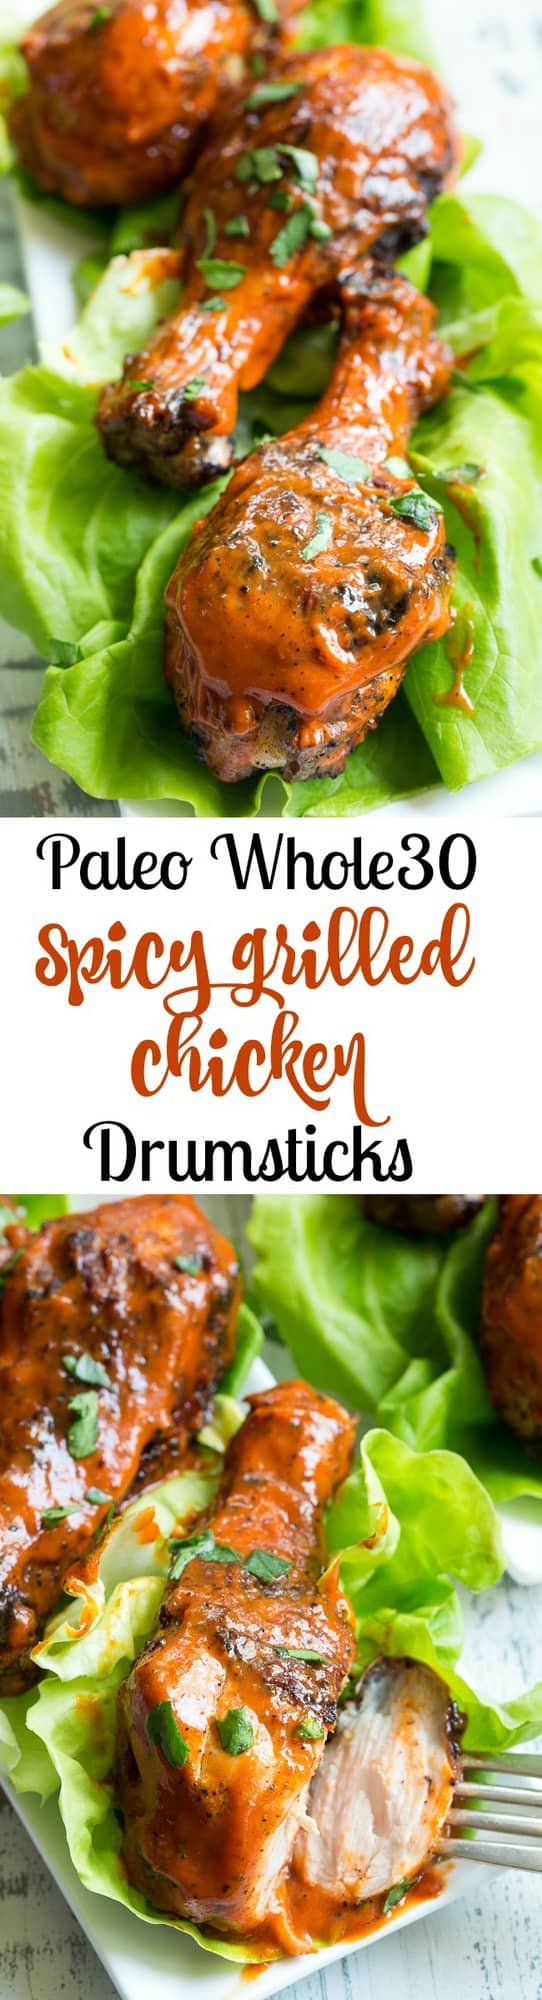 These spicy chicken drumsticks are perfectly seasoned, grilled, and tossed in a spicy, flavor-packed sauce!  Perfect for grilling season (or anytime of year!), family friendly, gluten-free, Paleo and Whole30 compliant.